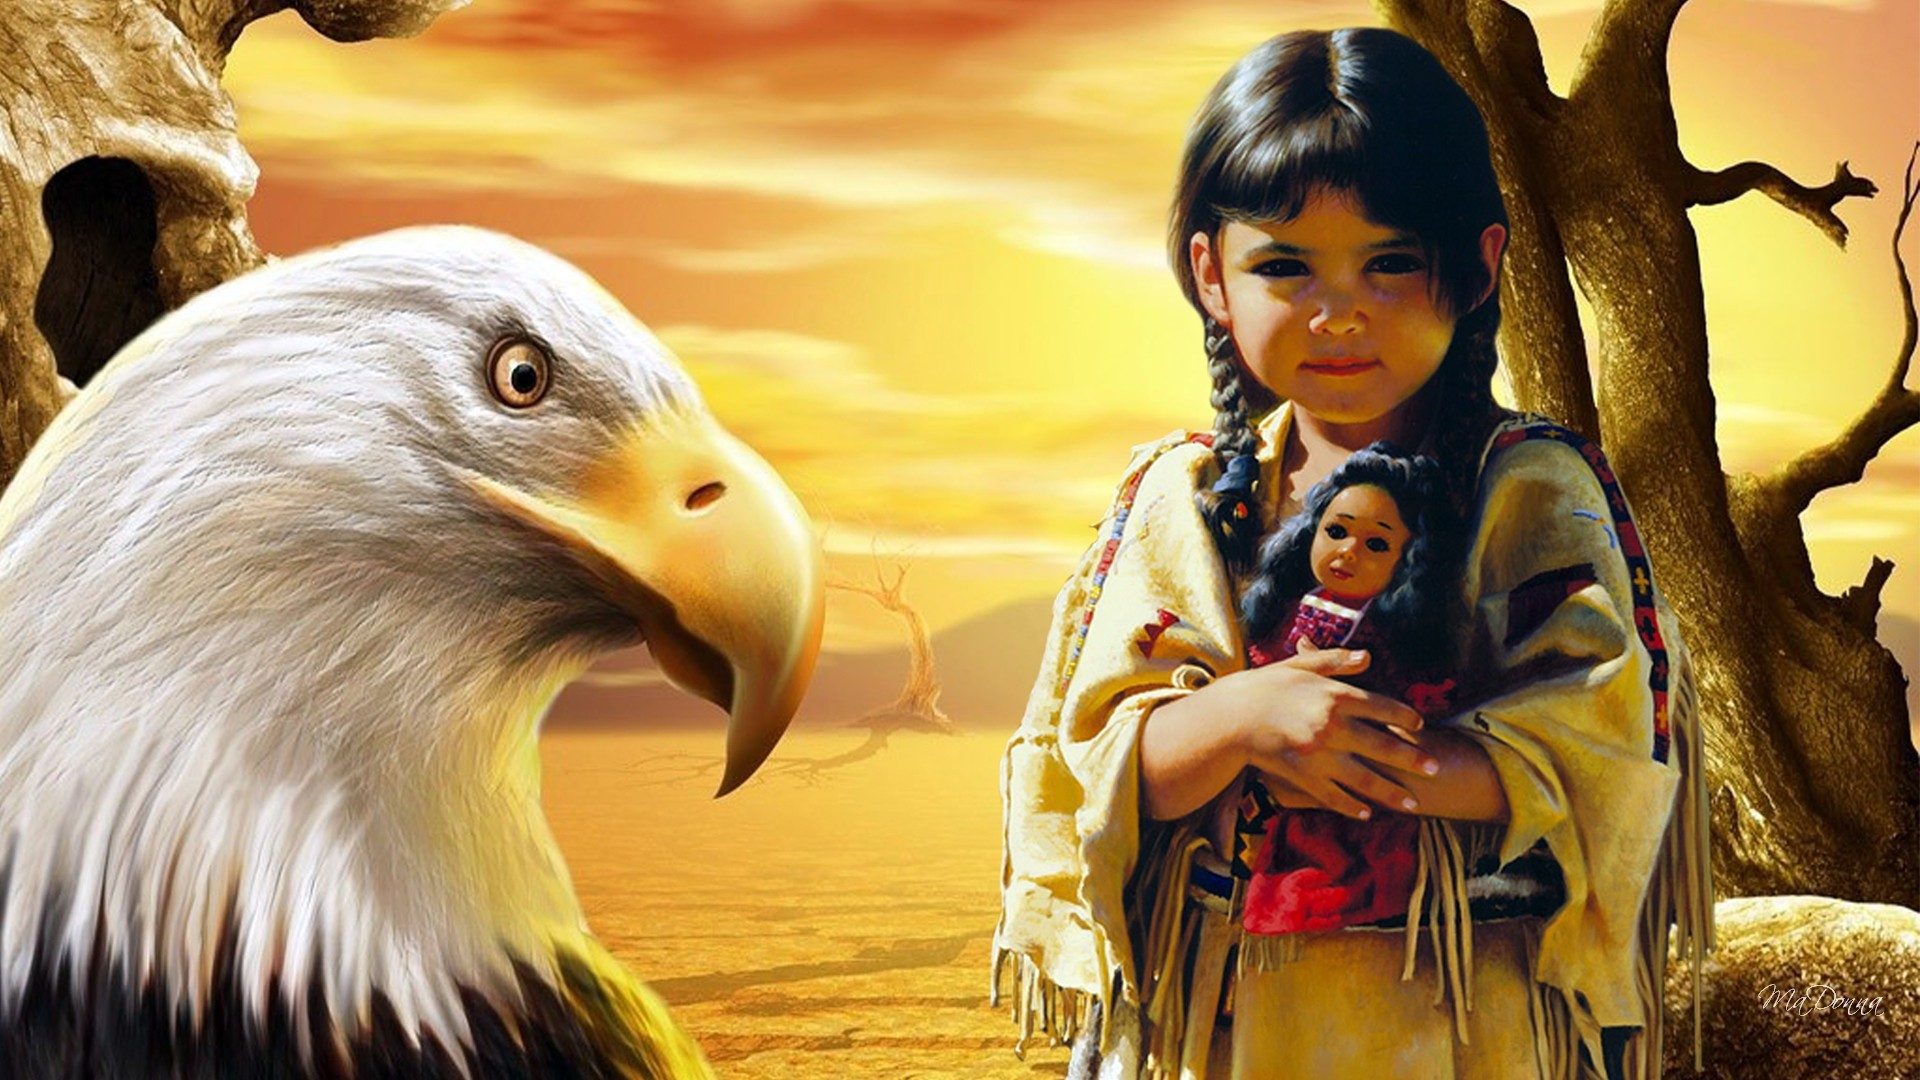 1920x1080 Native Americans images Native American HD wallpaper and background photos